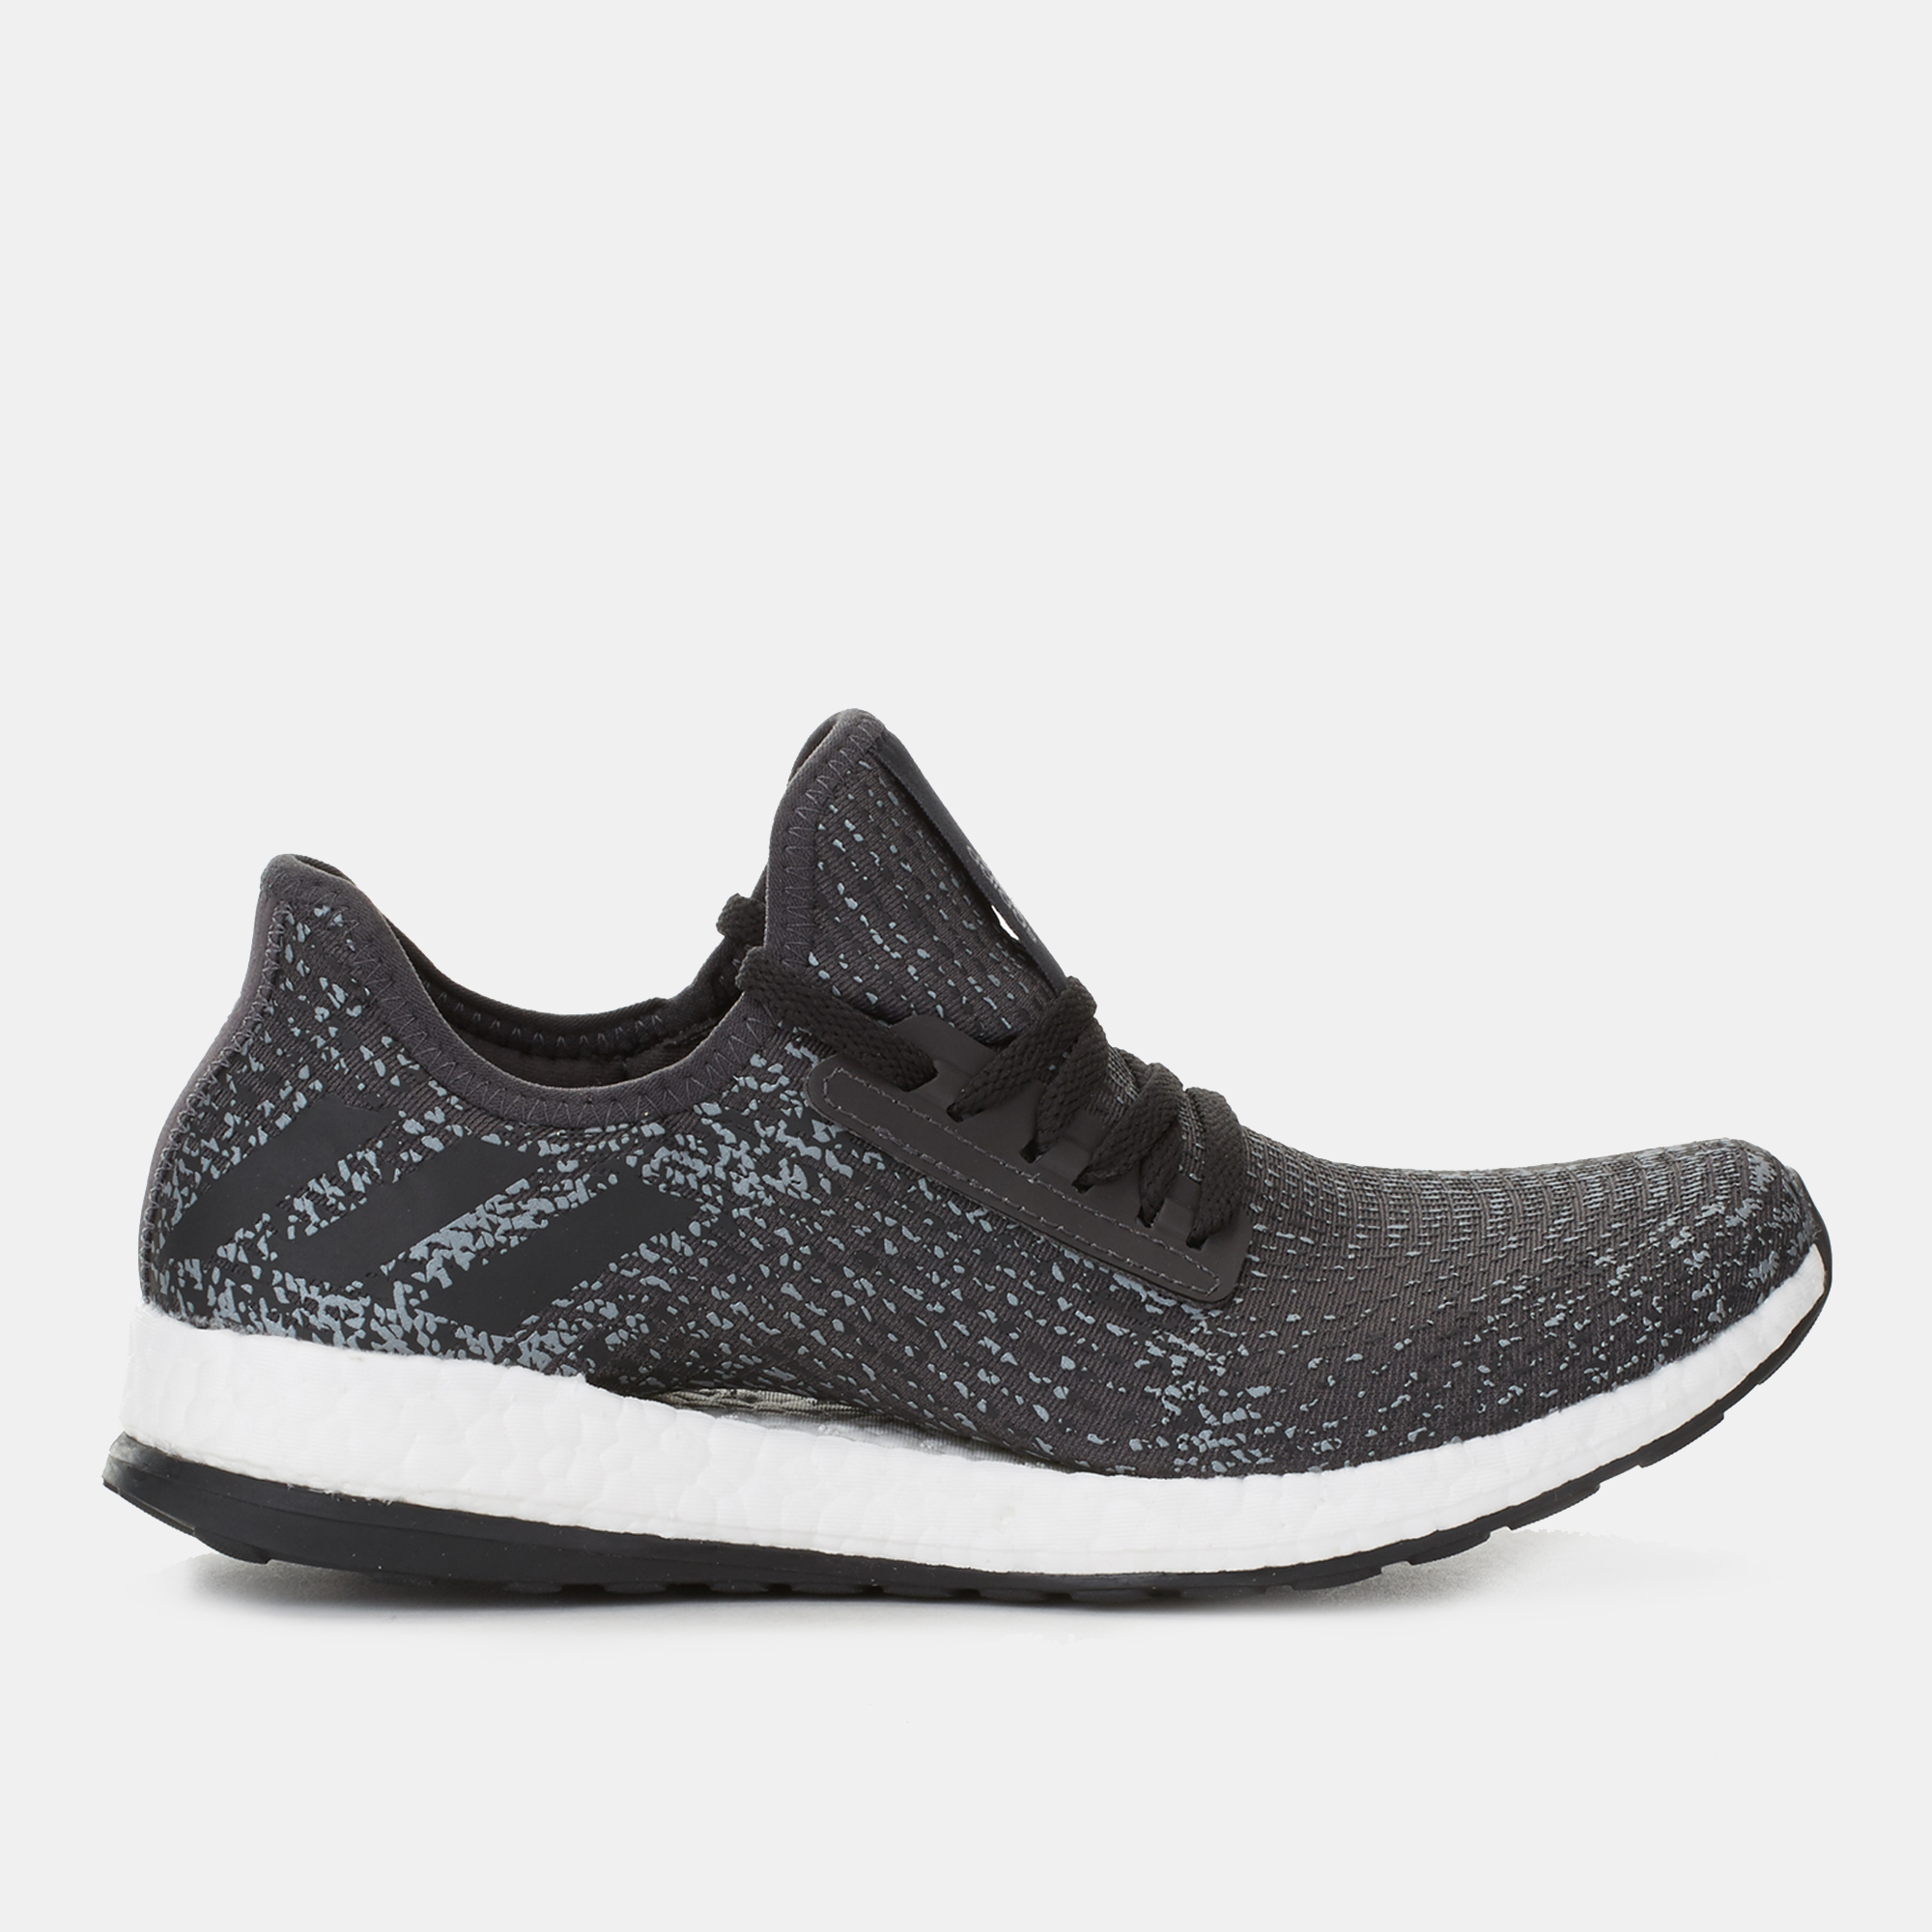 Pure Boost Adidas Casual Shoe